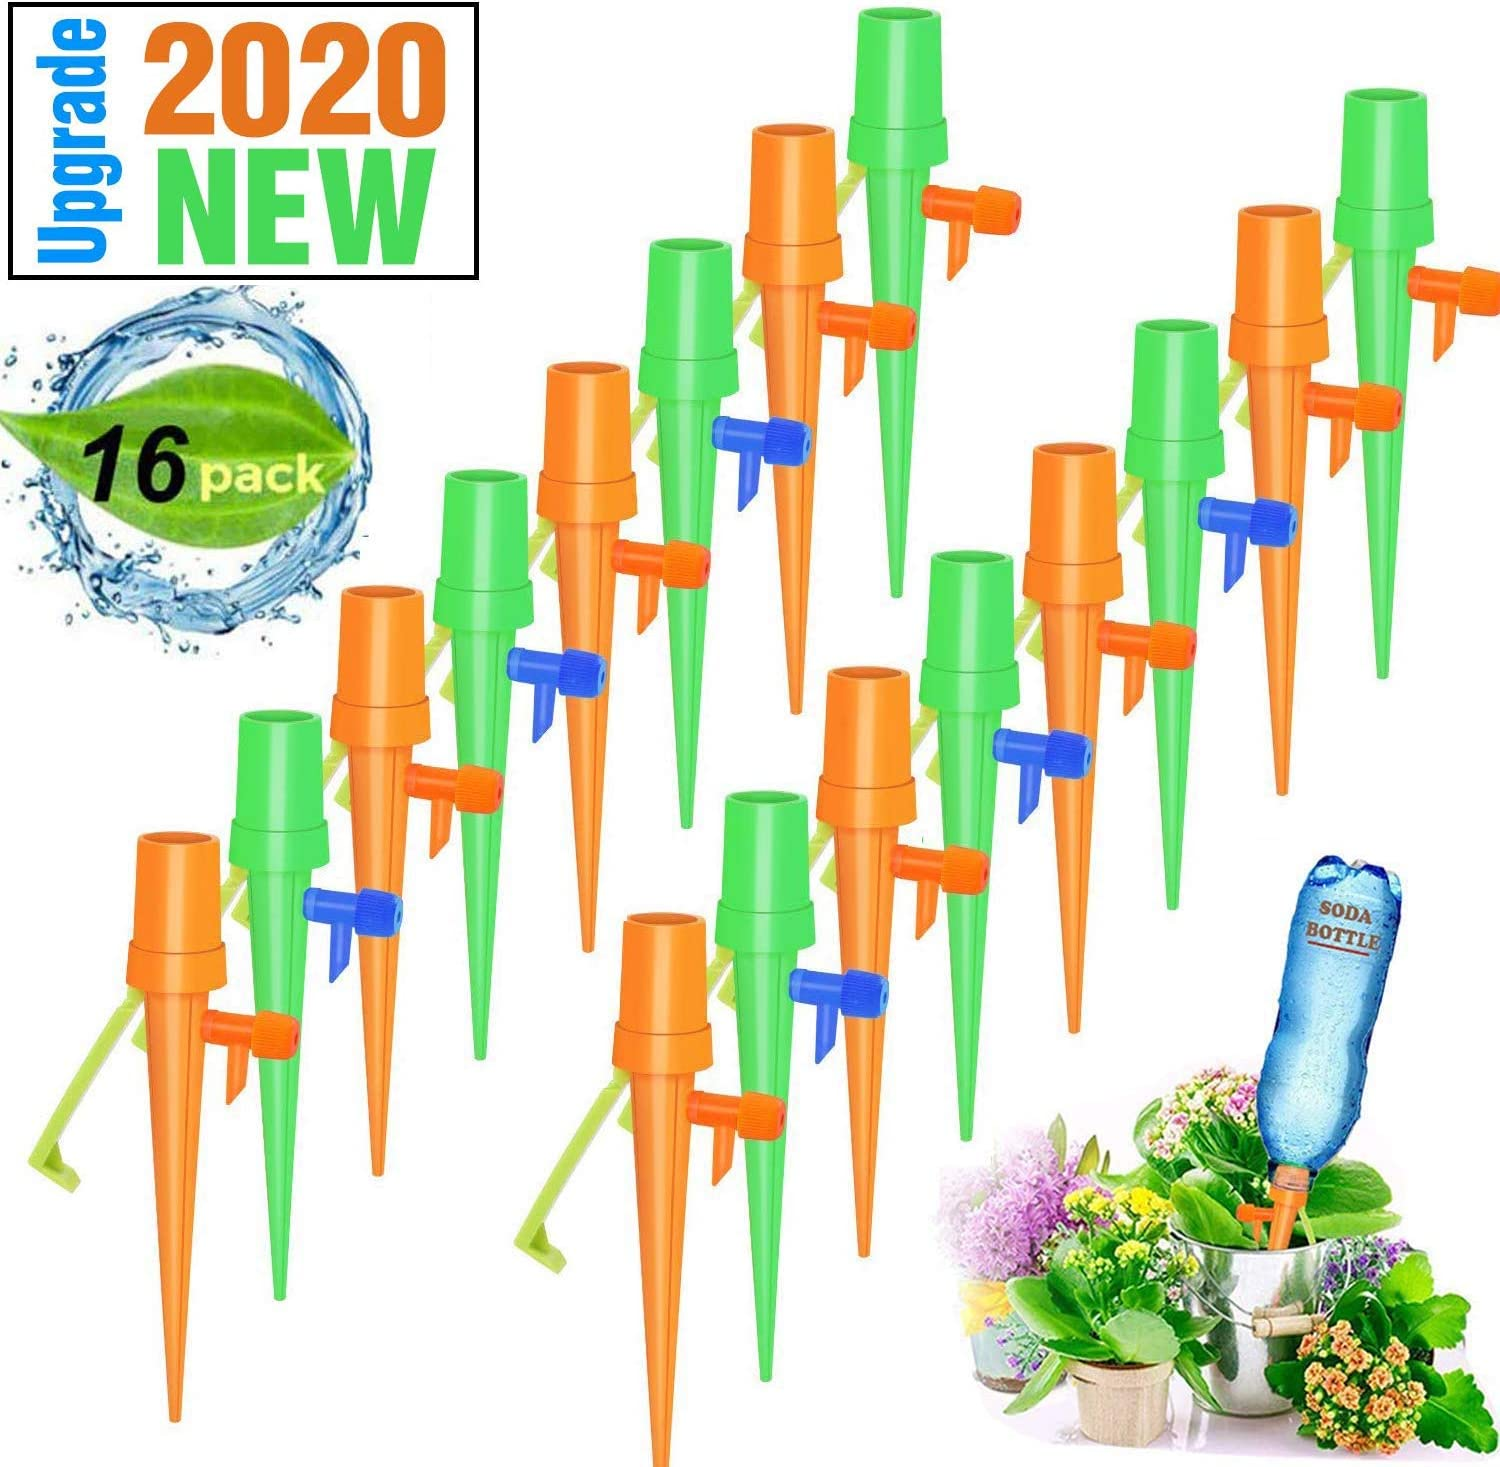 HomeMall 16 PCS Plant Self Watering Spikes System, Automatic Self Irrigation Watering Drip Devices with Slow Release Control Valve Switch for Indoor Outdoor Home and Office Flower or Vegetables